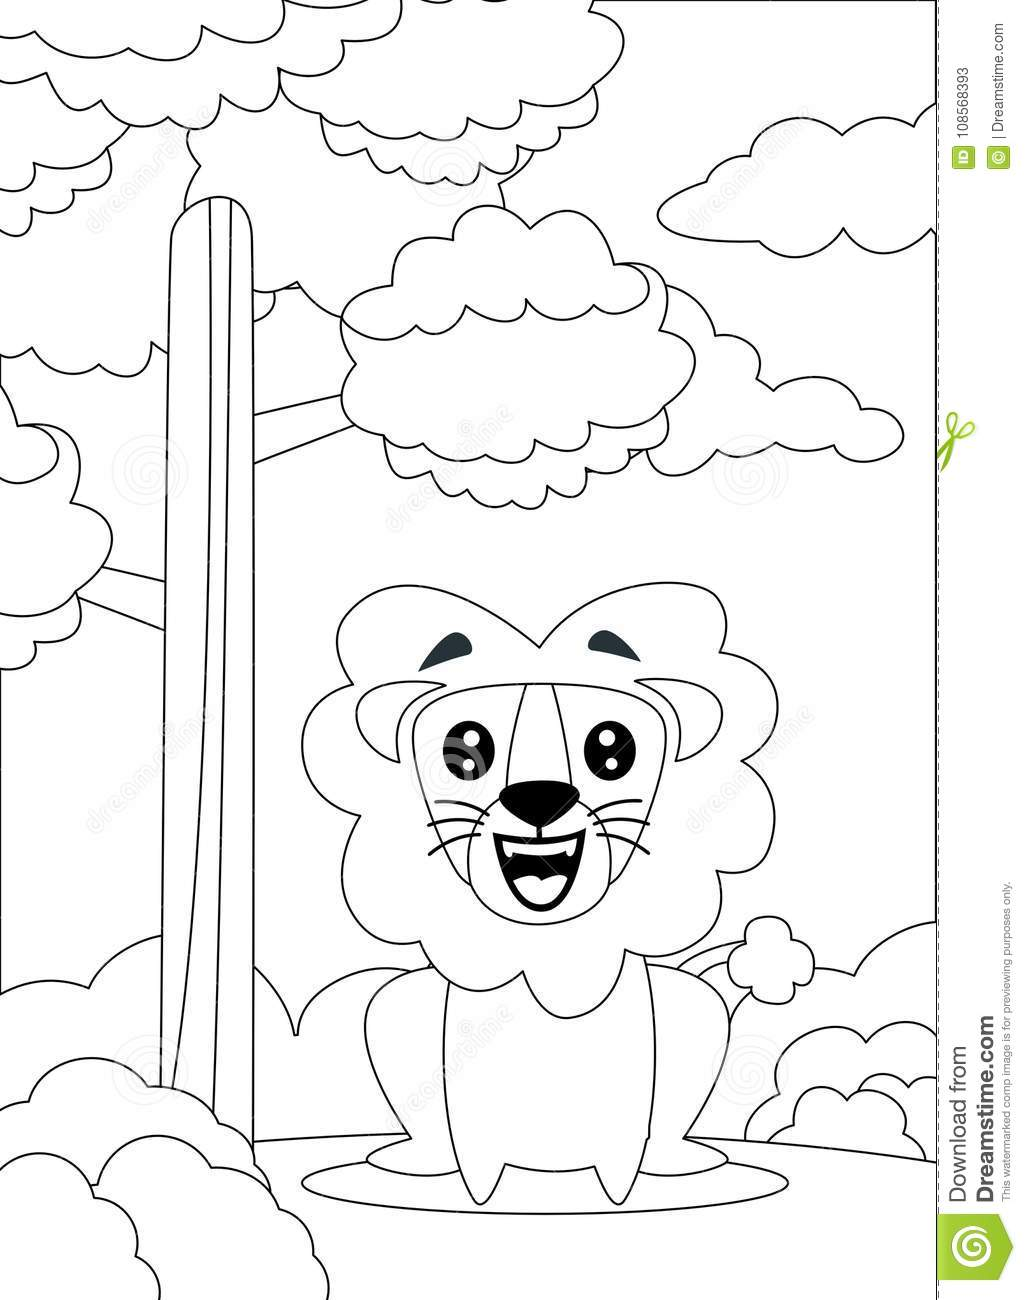 Coloring Page Of A Lion Sit And Smiling. Stock Vector - Illustration ...